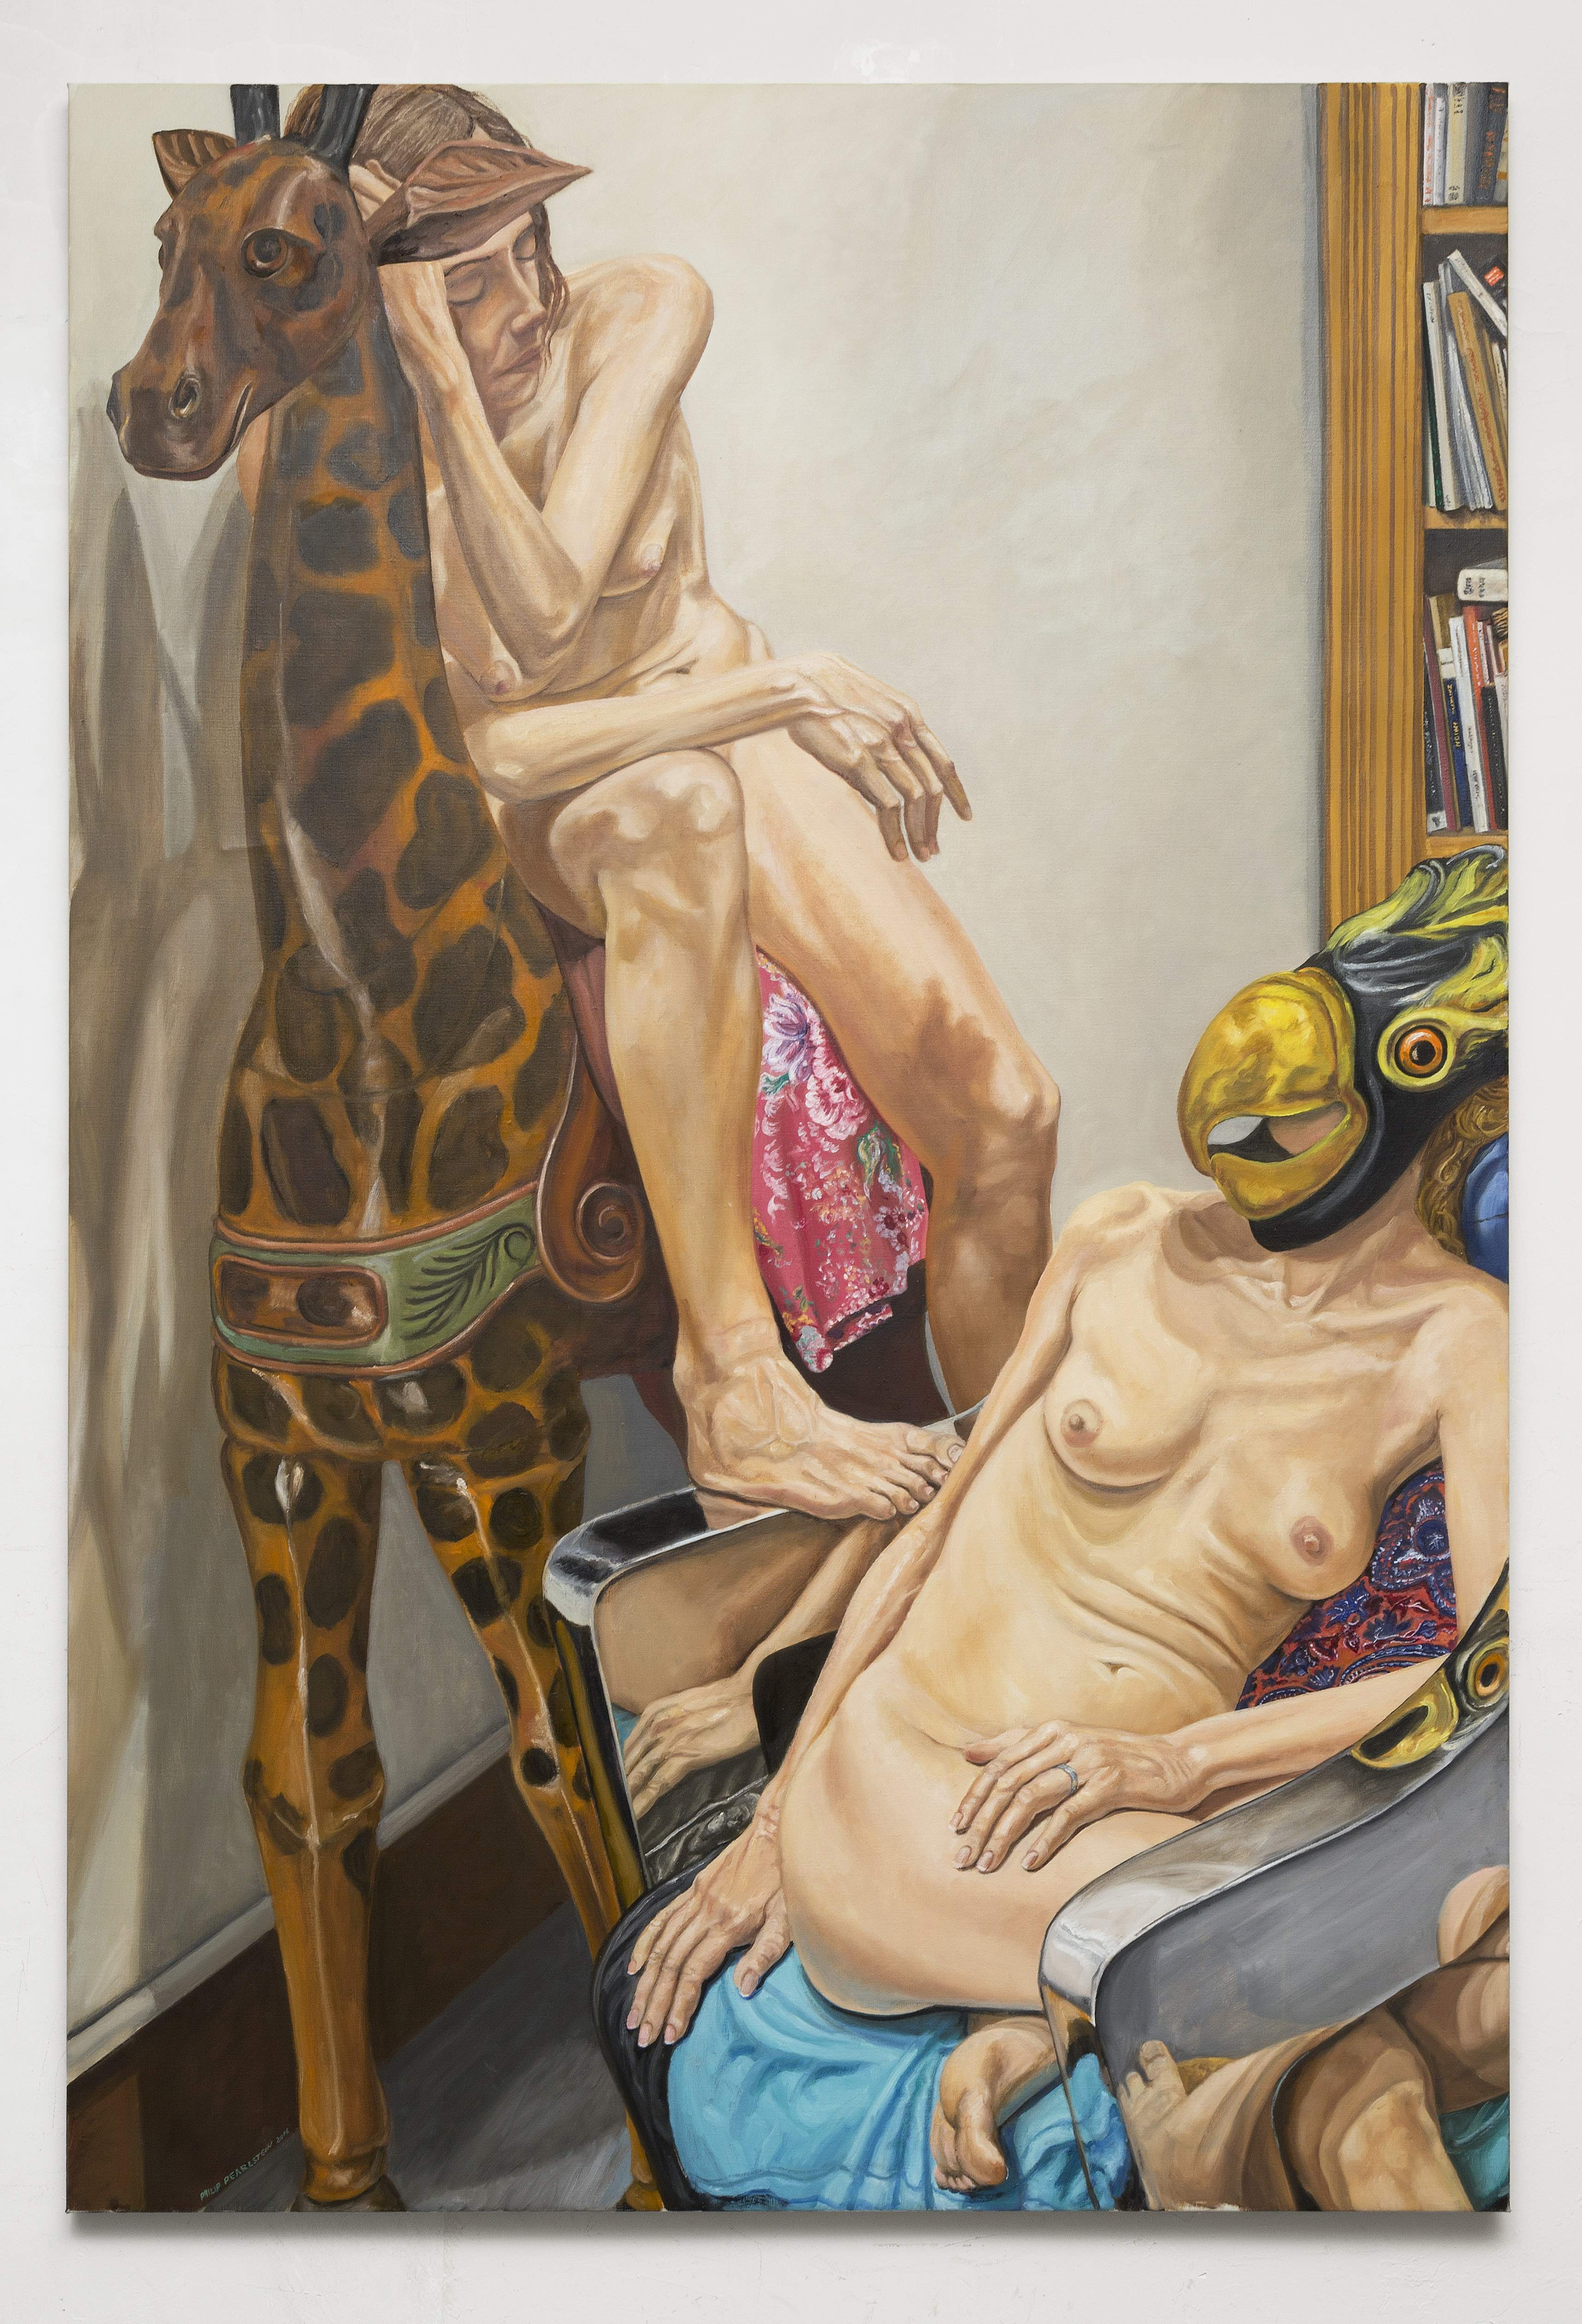 Philip PearlsteinTwo Models with Giraffe and Bird Masks, Chrome Chair and Book Shelves, 2016, Oil on canvas, 72 x 48 in. (182.88 x 121.92 cm)